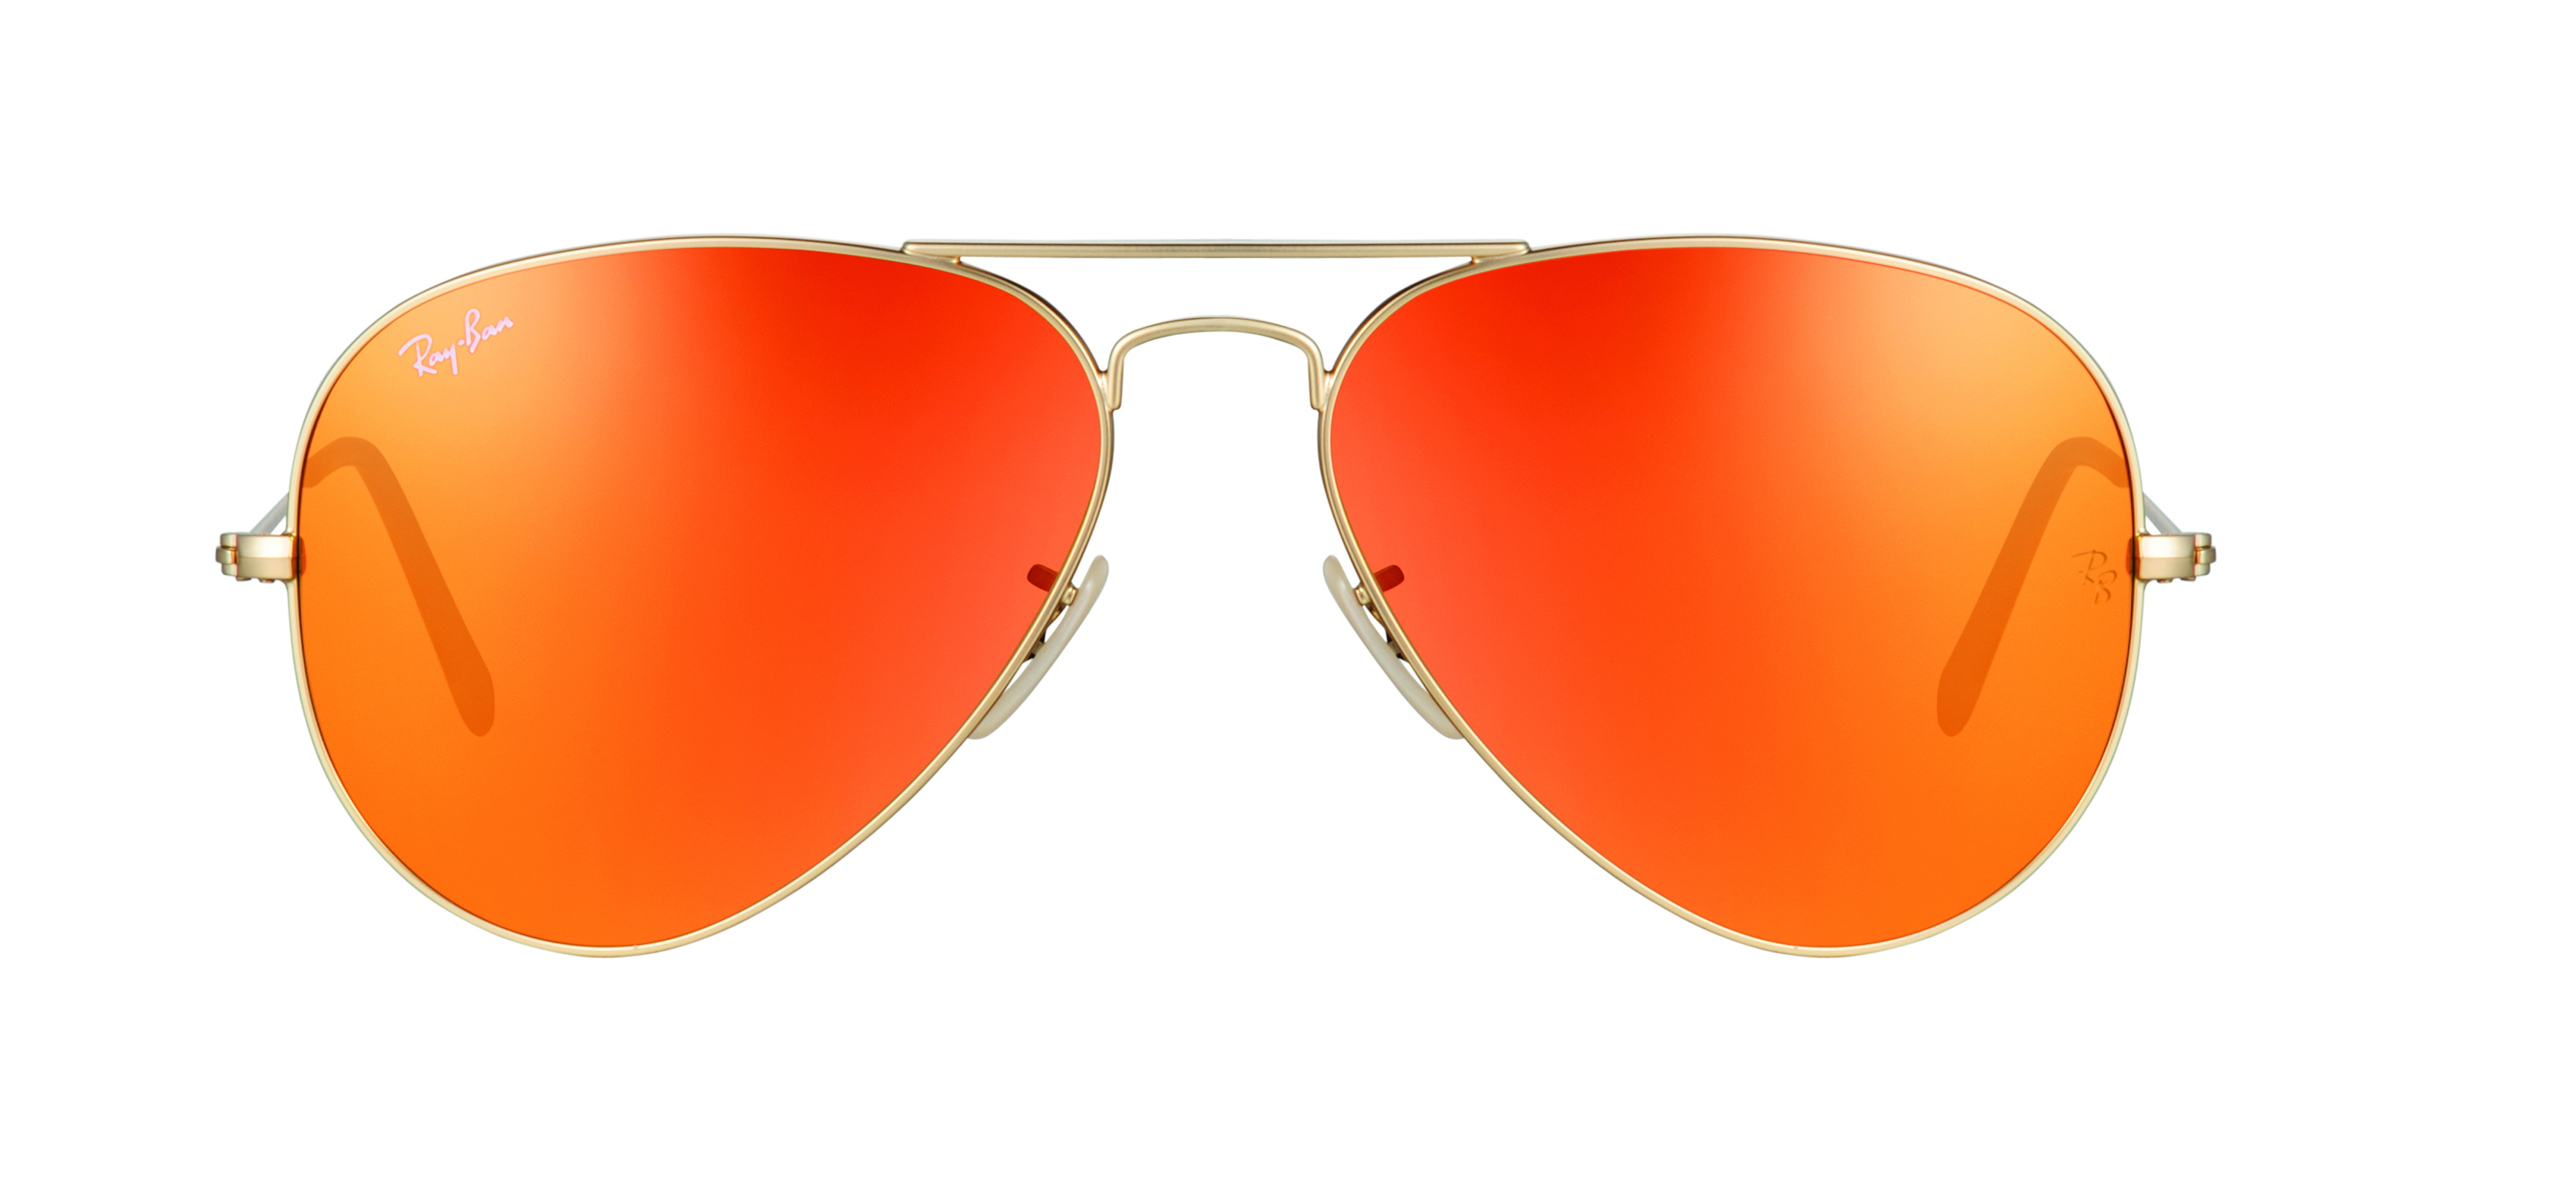 ray ban mirrored orange frames